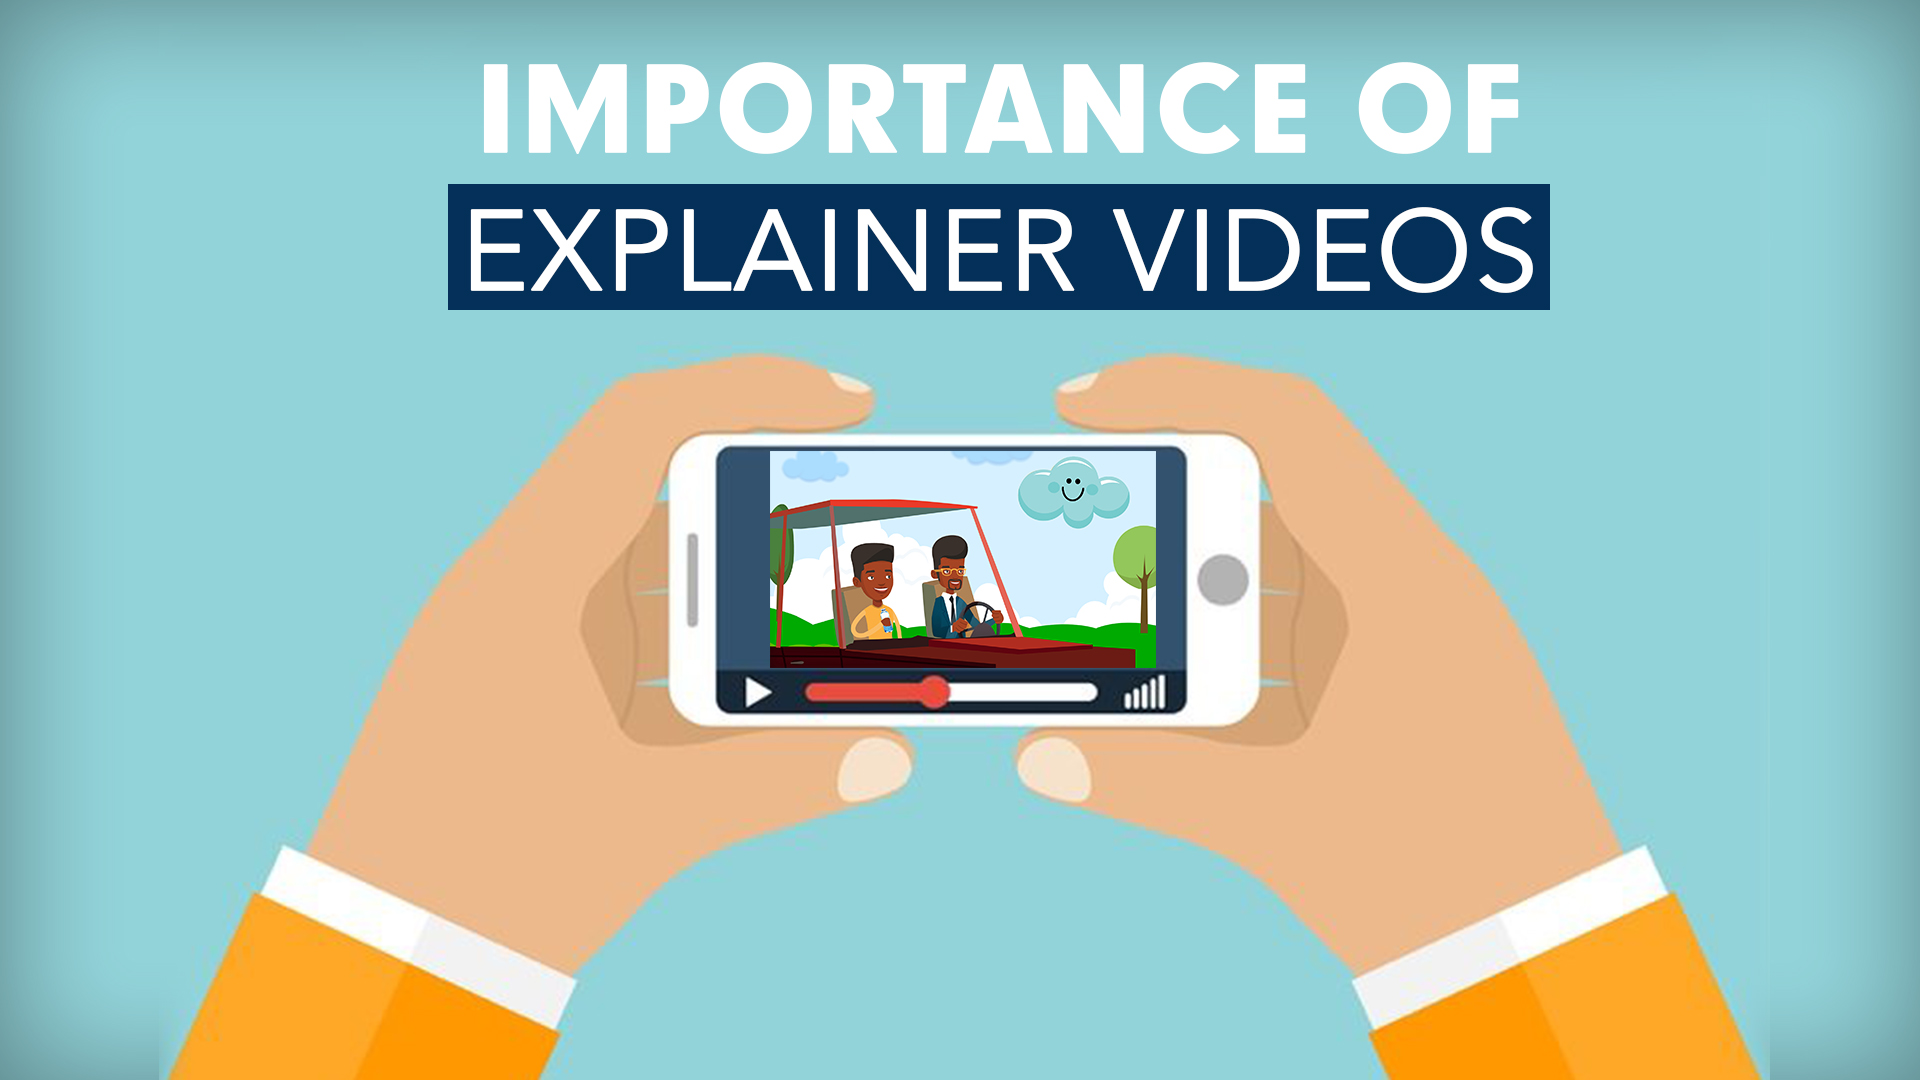 Importance of explainer videos